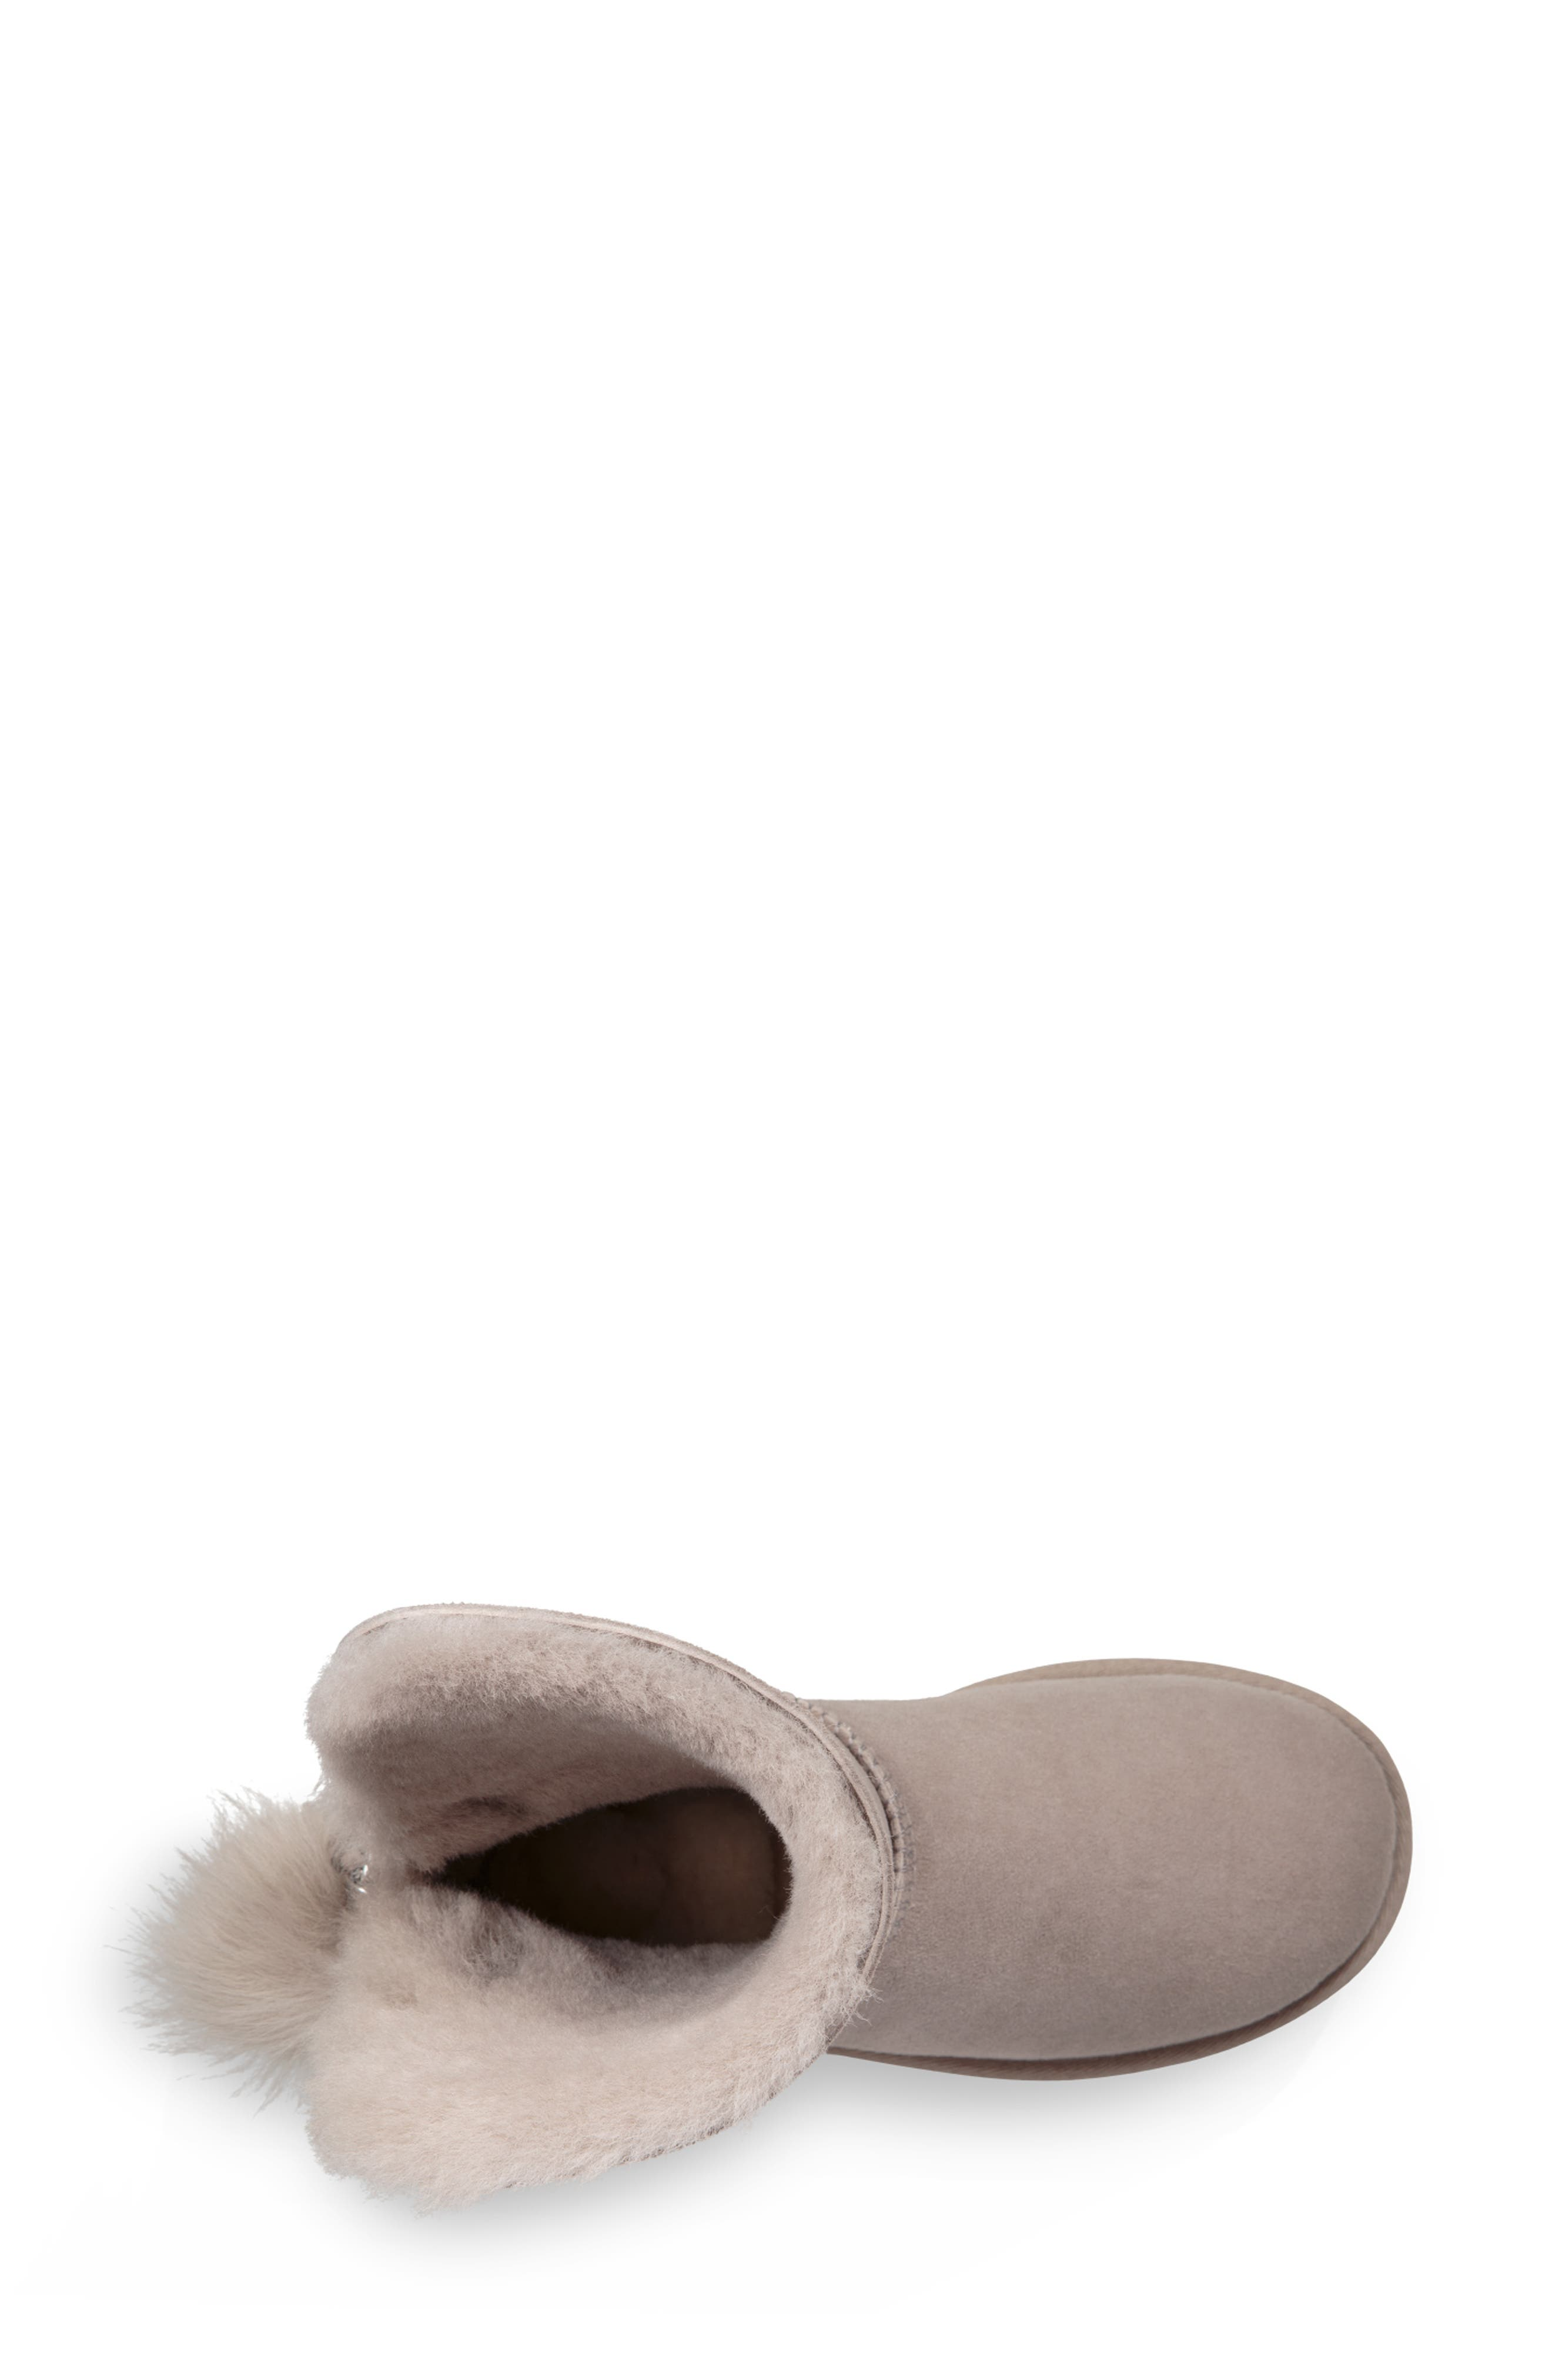 Classic Charm Bootie,                             Alternate thumbnail 4, color,                             WILLOW SUEDE